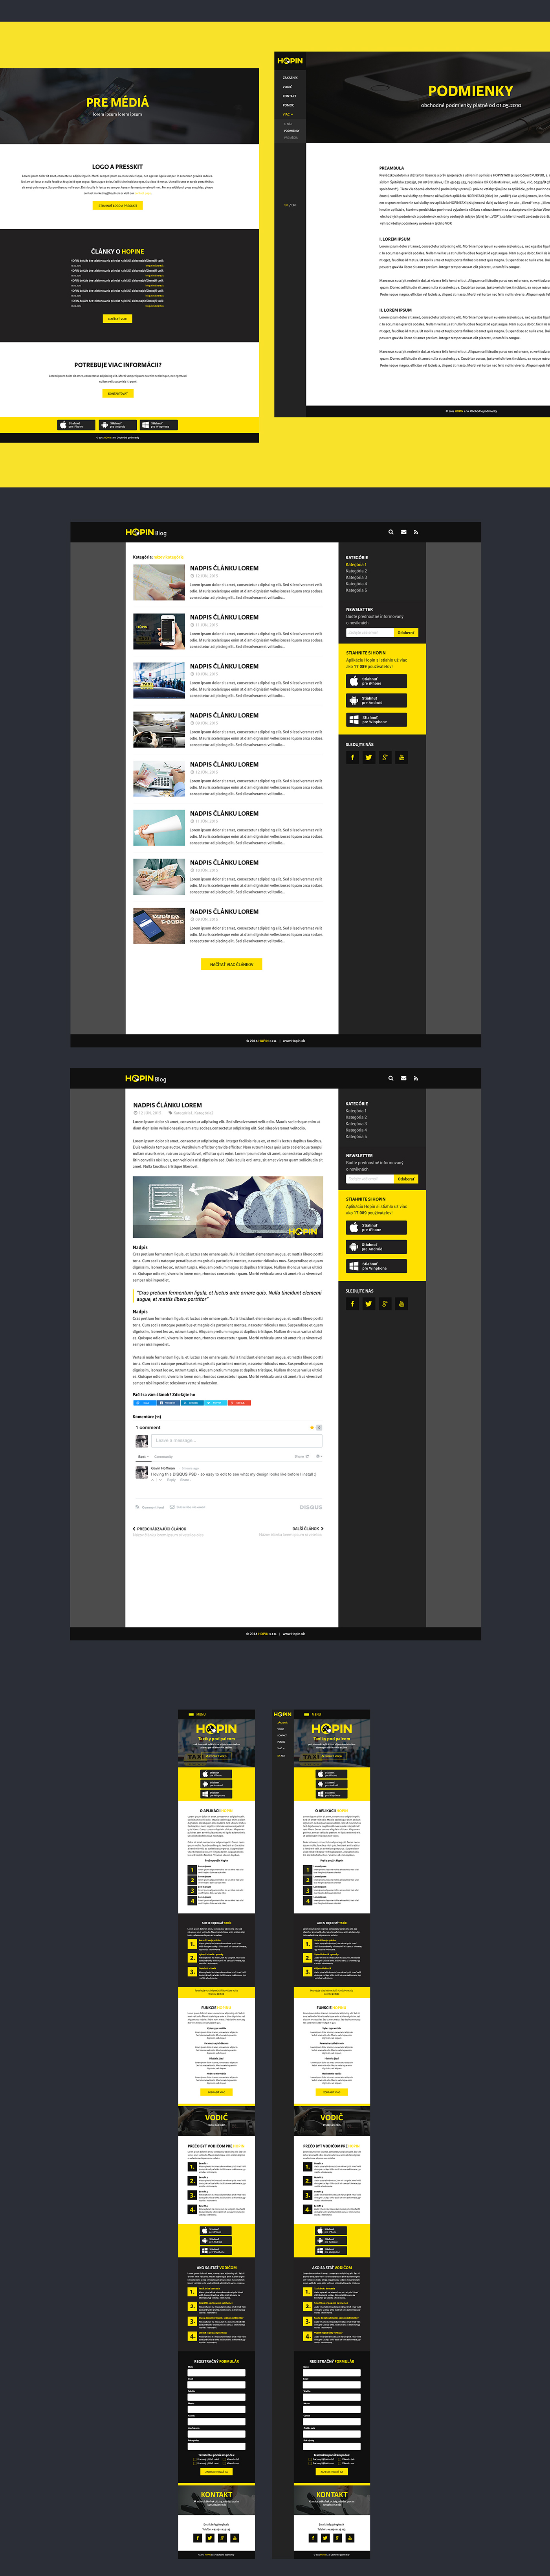 Website redesign UI taxi mobile application